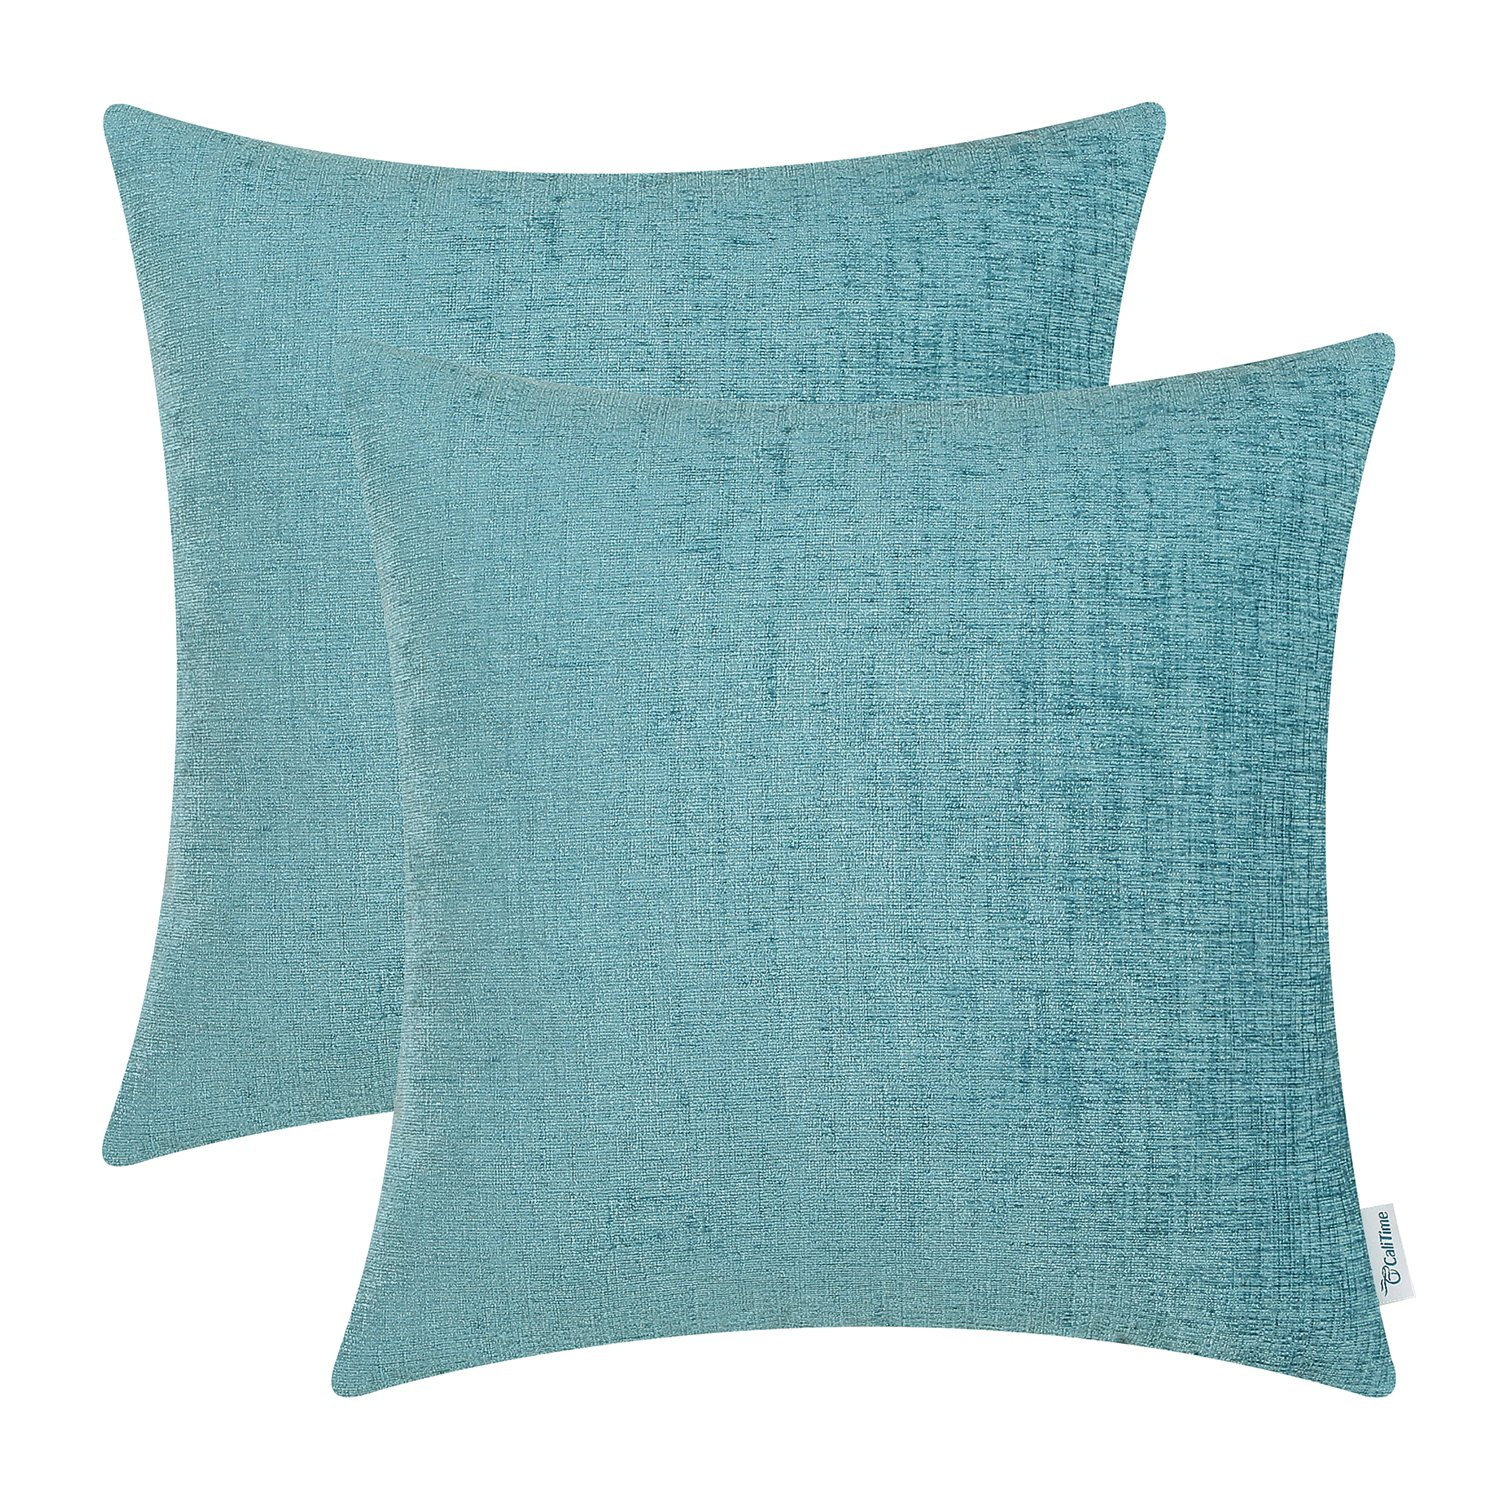 CaliTime Pack of 2 Cozy Throw Pillow Covers Cases for Couch Sofa Home Decoration Solid Dyed Soft Chenille 16 X 16 Inches Teal